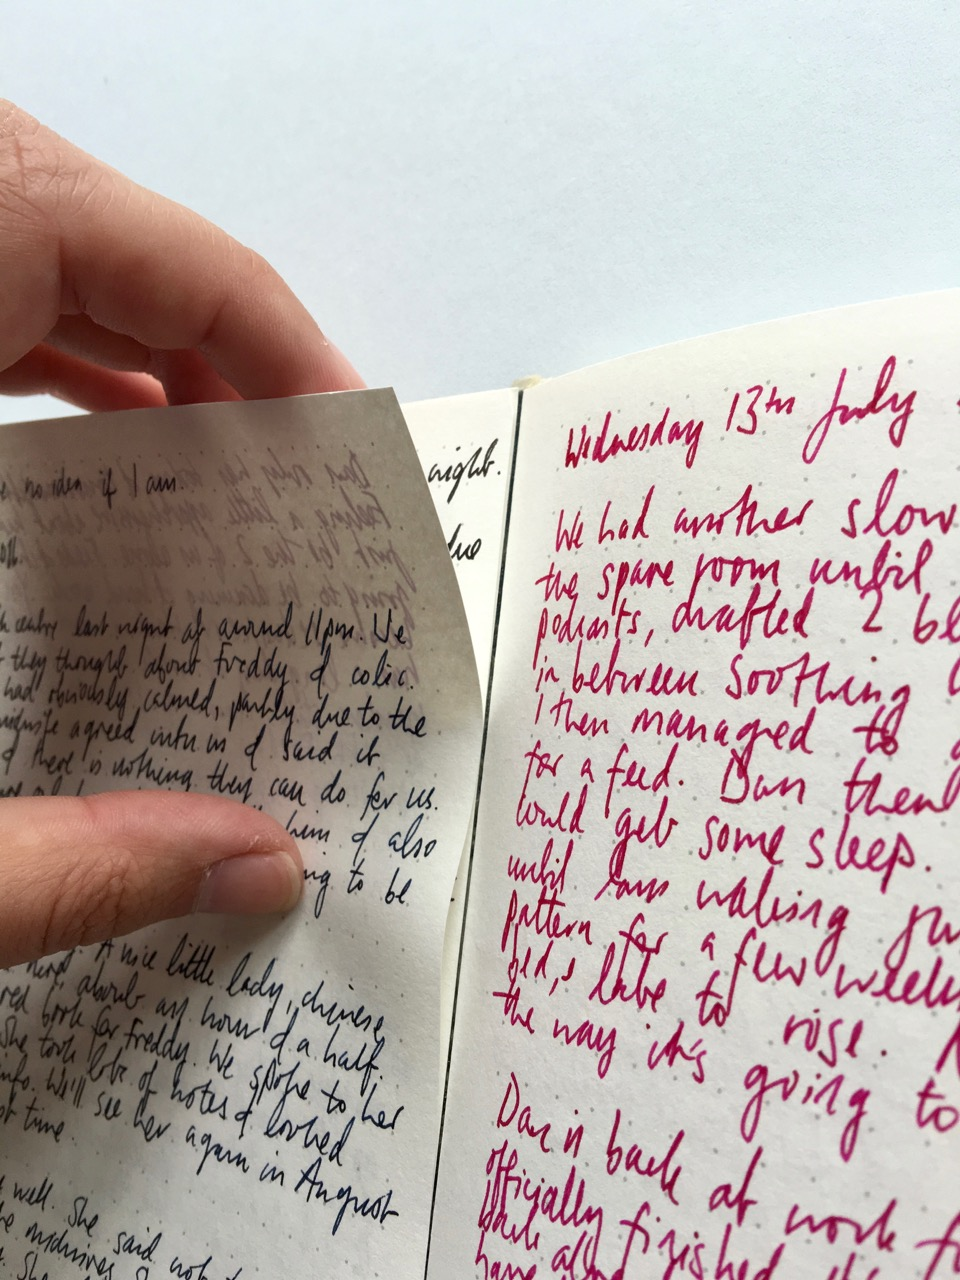 A used page beginning to come away from the notebook binding